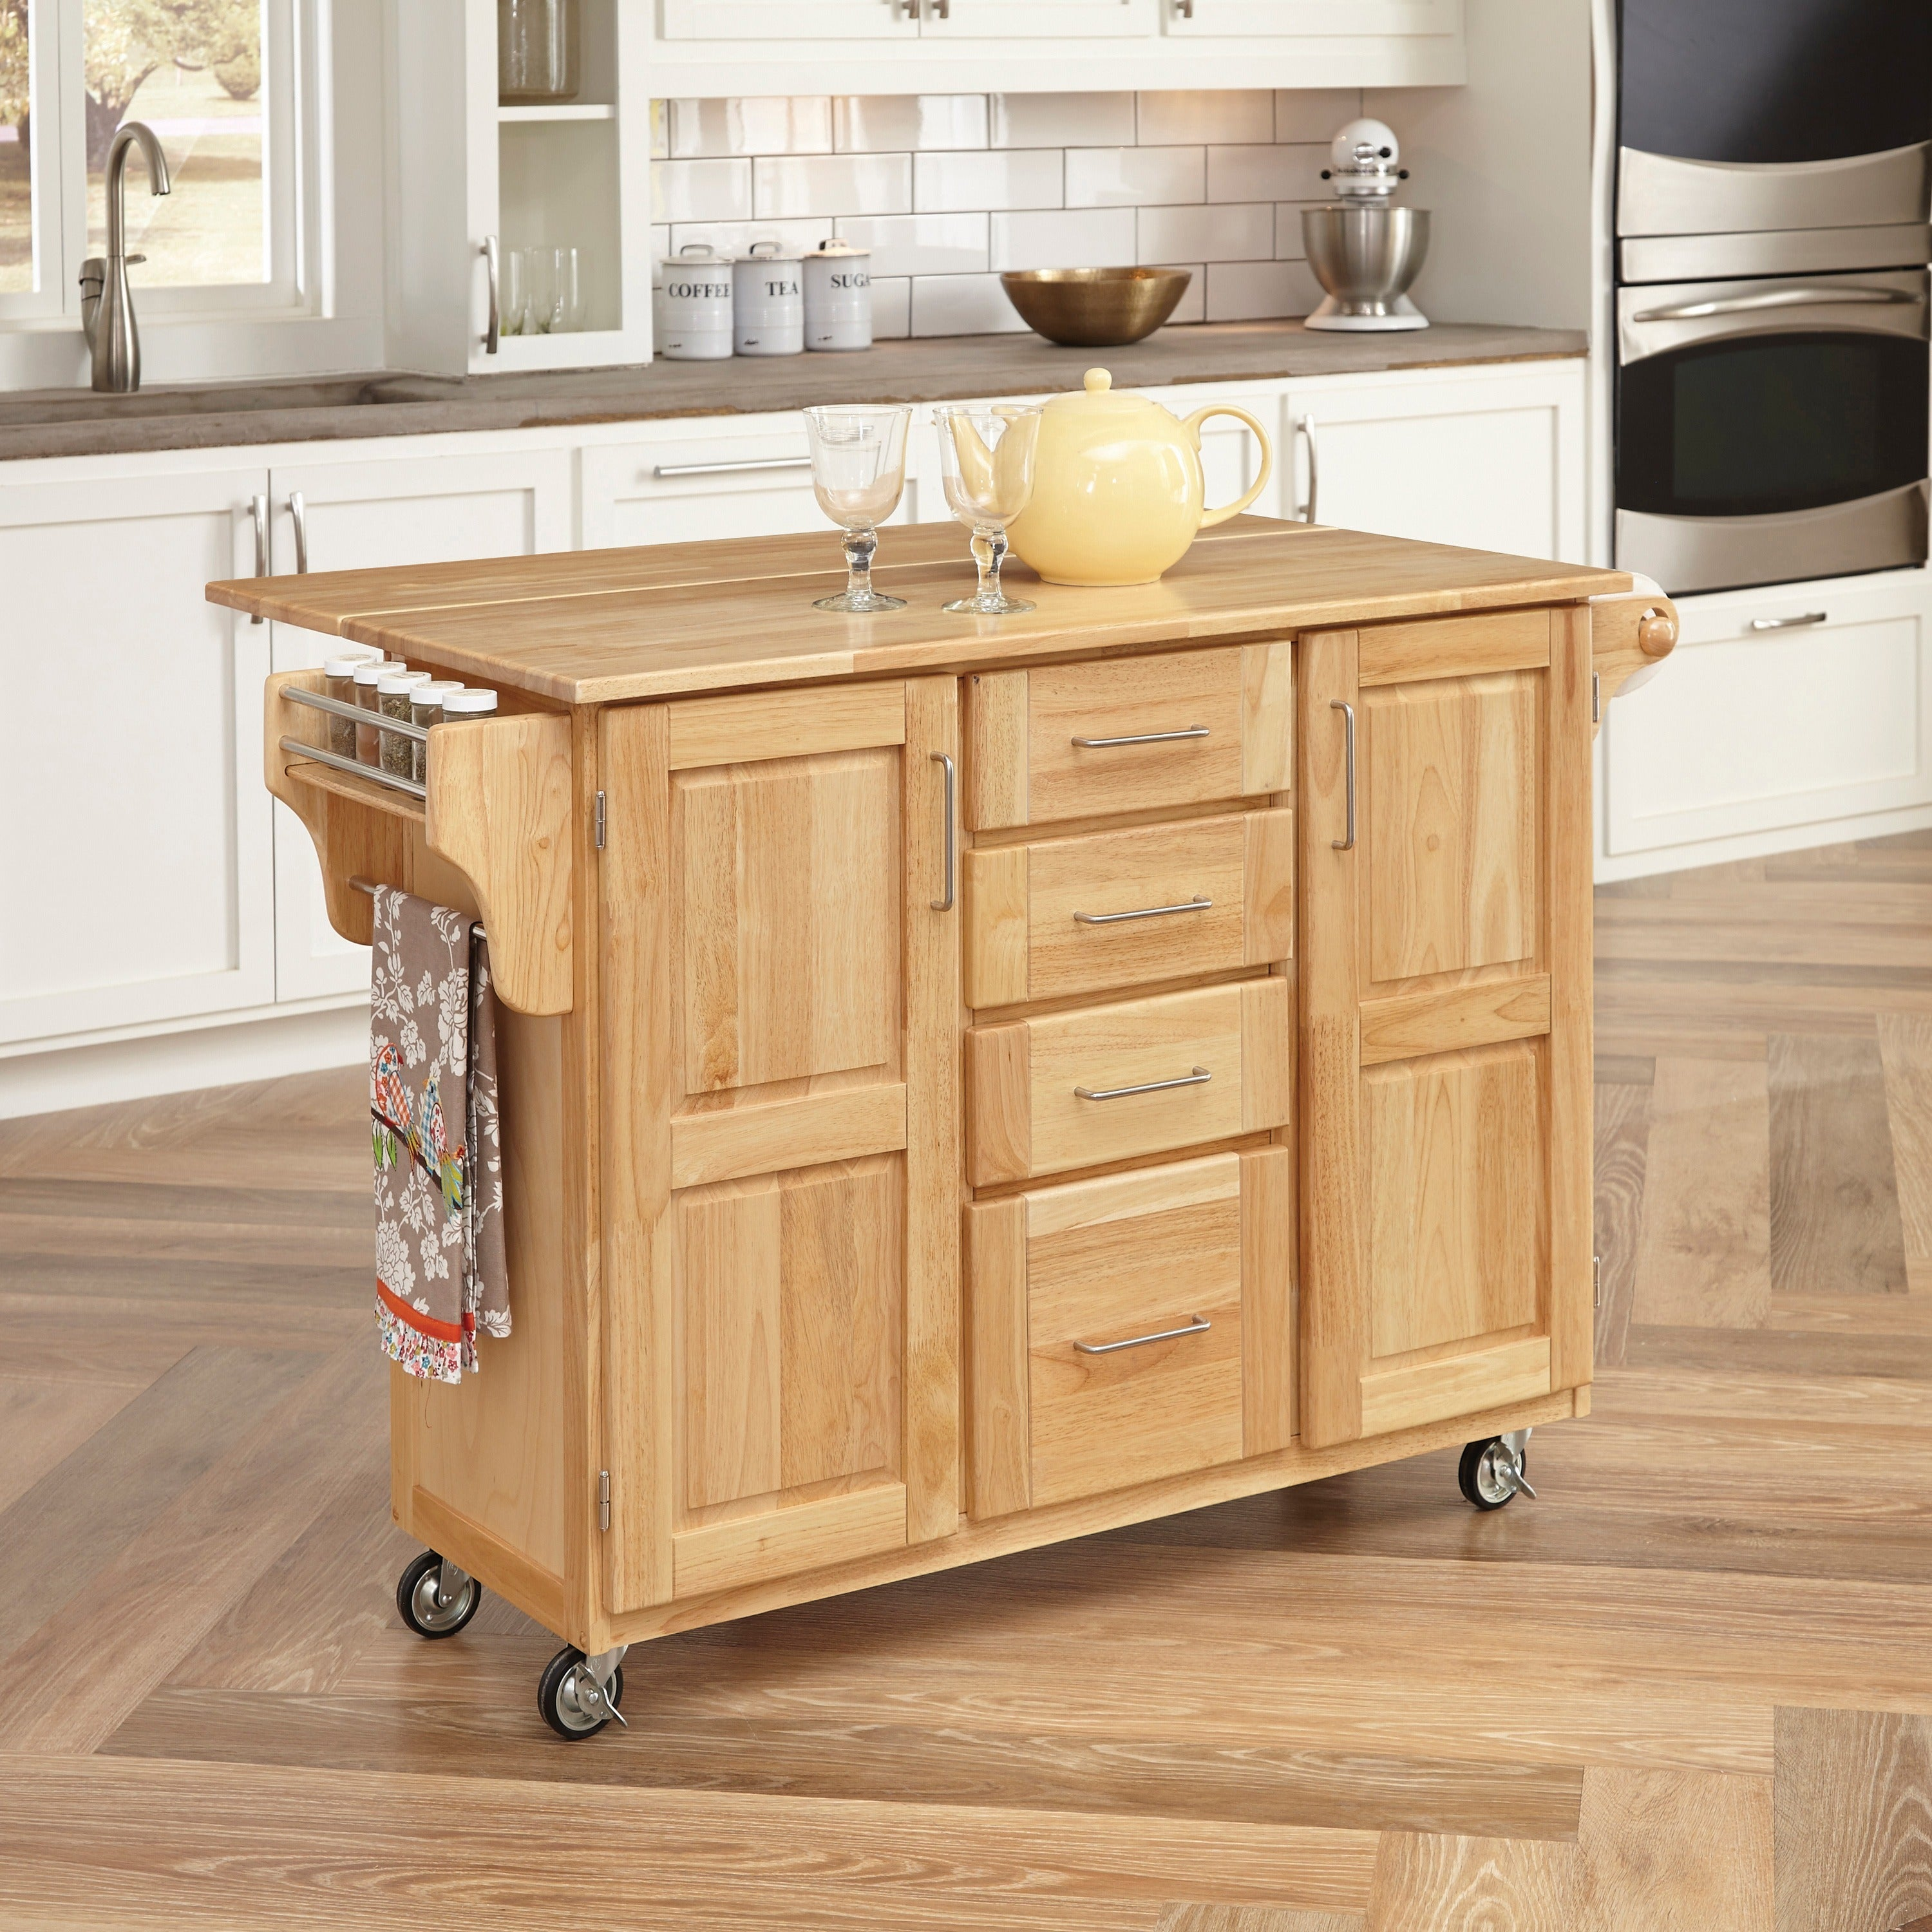 Home Styles Breakfast Bar Kitchen Cart with Natural Wood ...